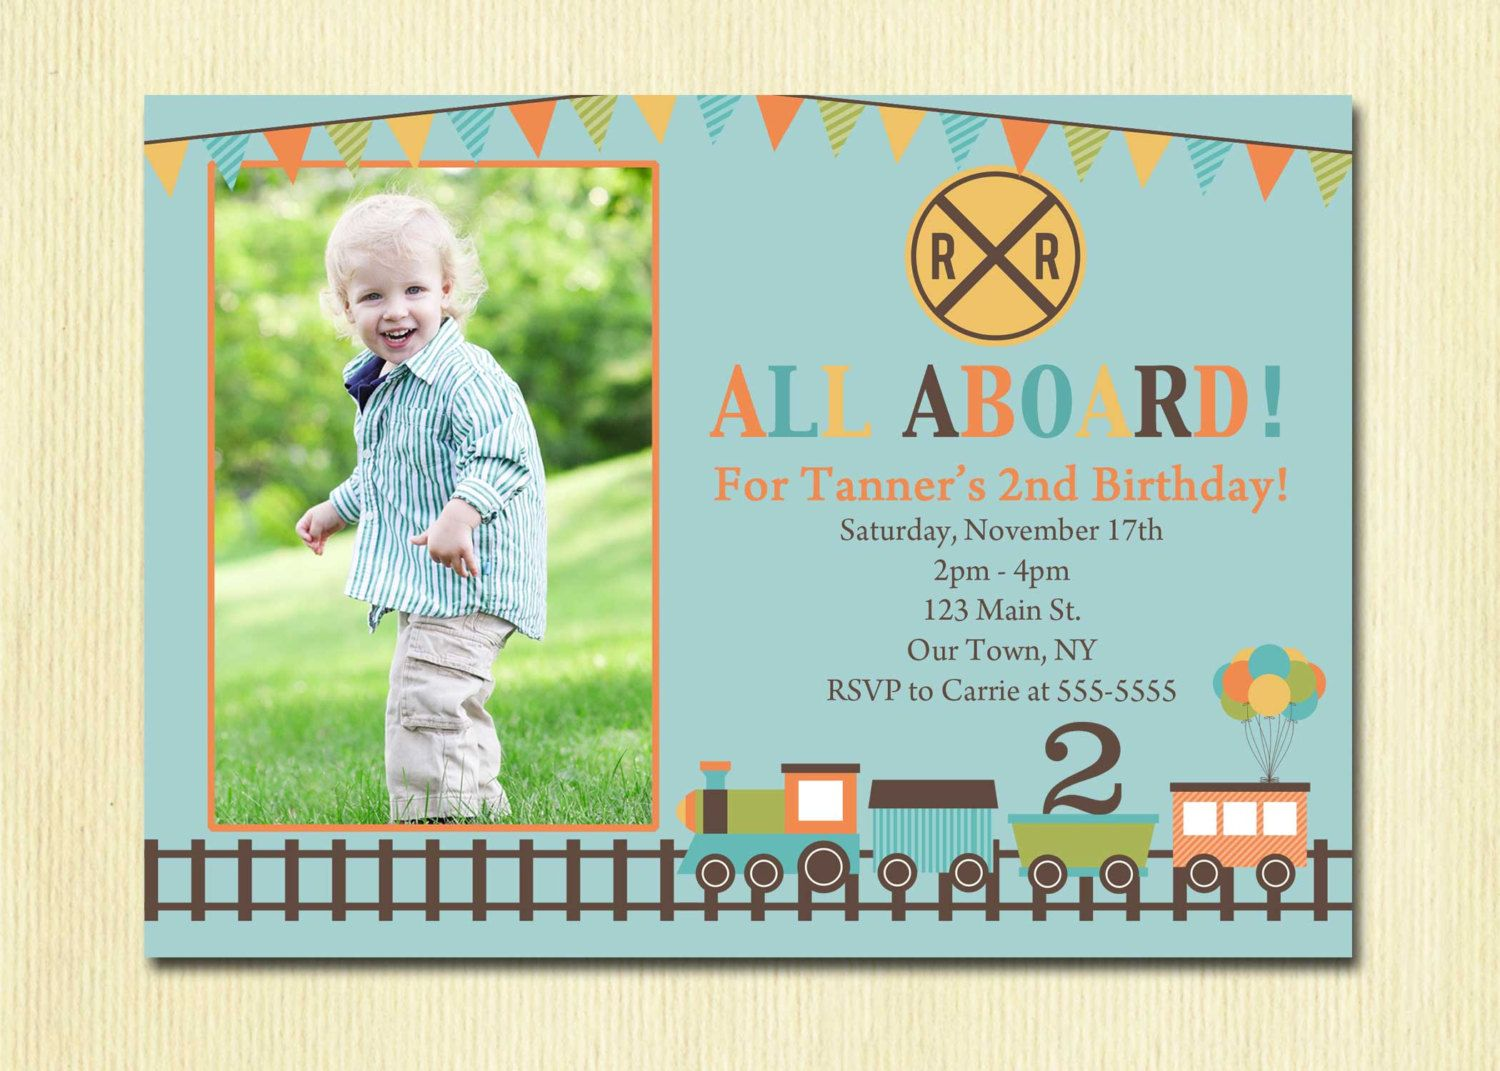 4th birthday invitation wording ; 4th-birthday-invitation-wording-boy-302f188a1478b7d2146326092bcafd2b